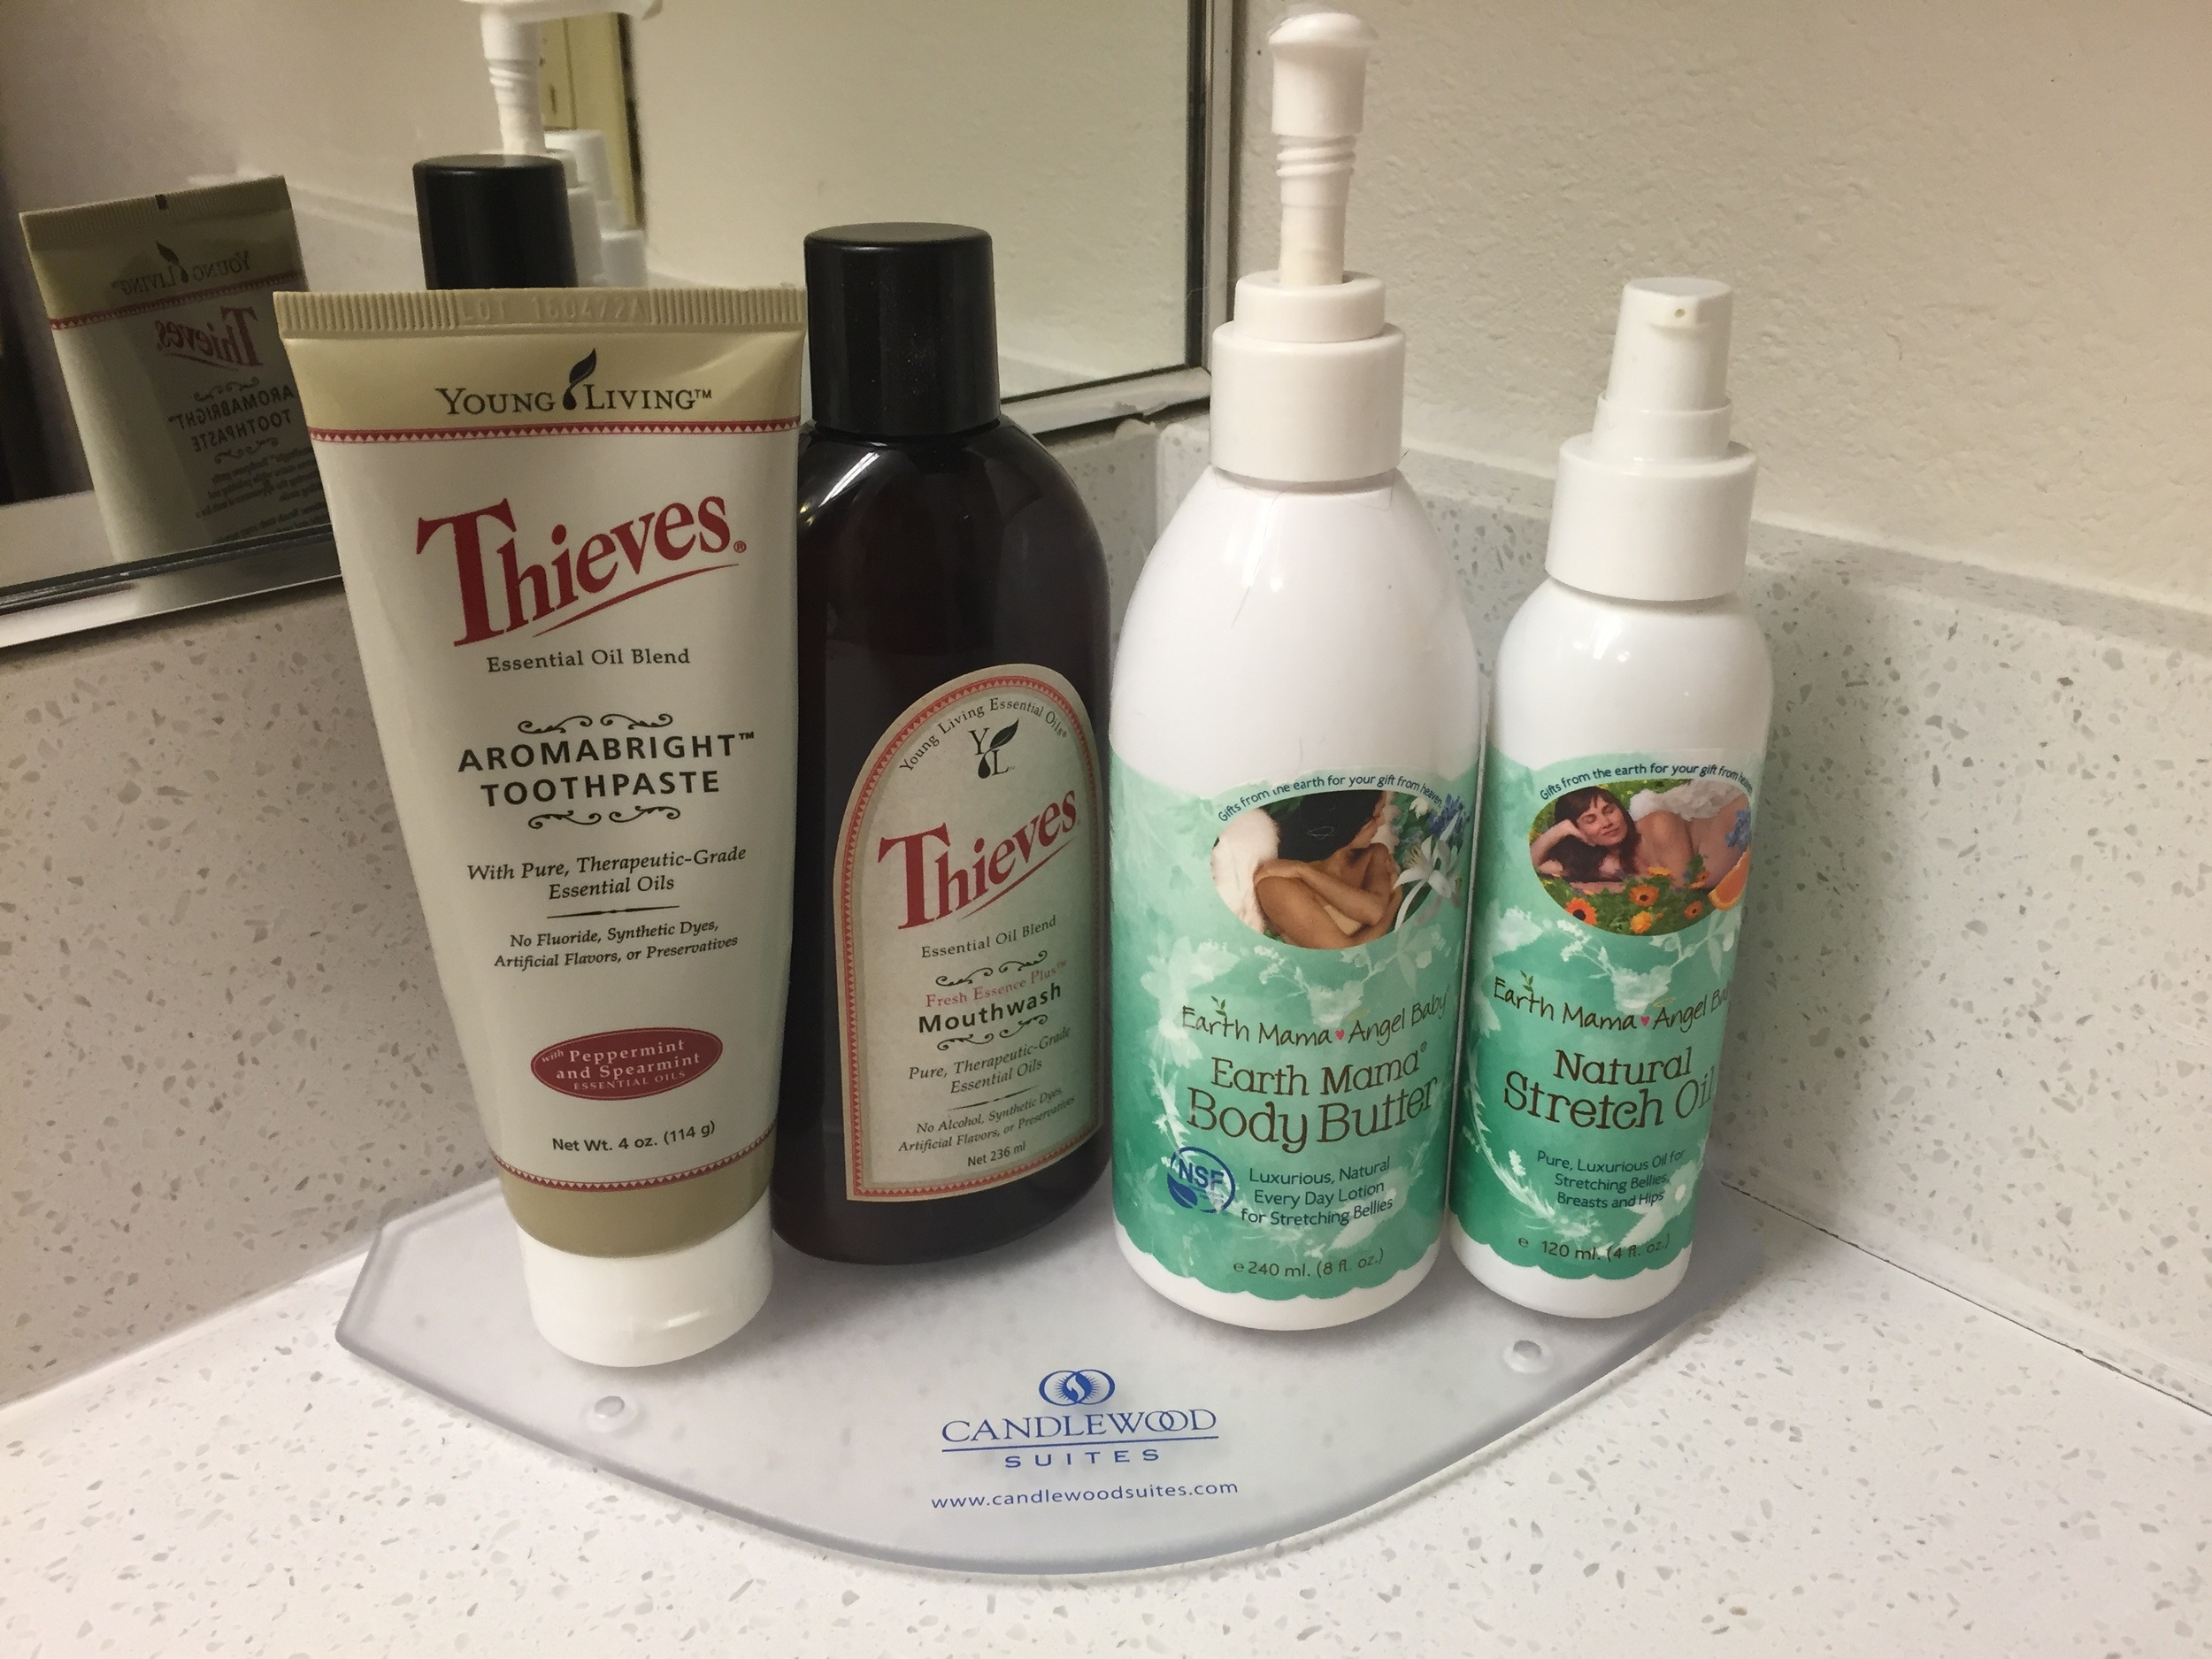 THe bathroom of our hotel in Houston -- YL & Earth Mama products taking over